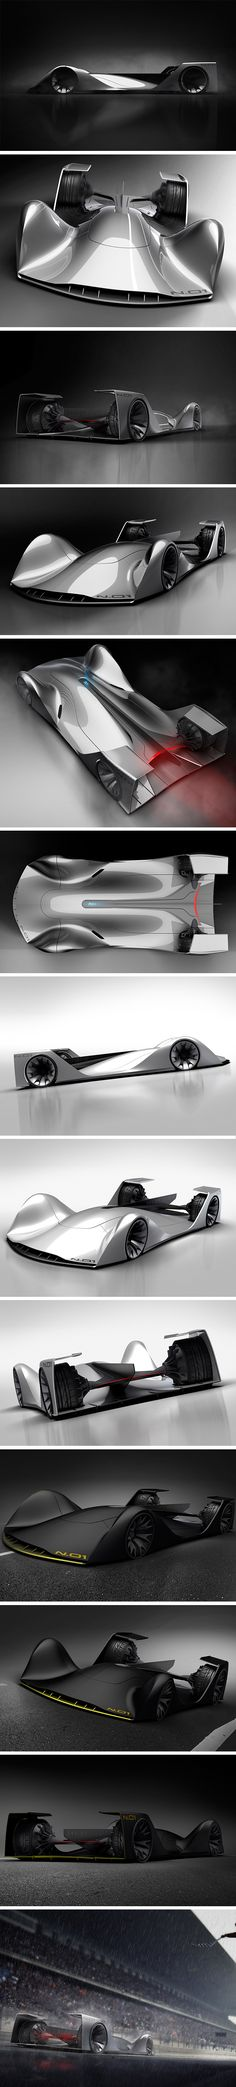 At first thought, the idea of an autonomous race car seems like a hard sell. However, that all changes when you see what the cars could look like by ditching the driver! N.01 is one such concept designed for the Roborace world. Created as a vision for the future of the autonomous race car, its iconic form is somehow aggressive and minimalistic at once.